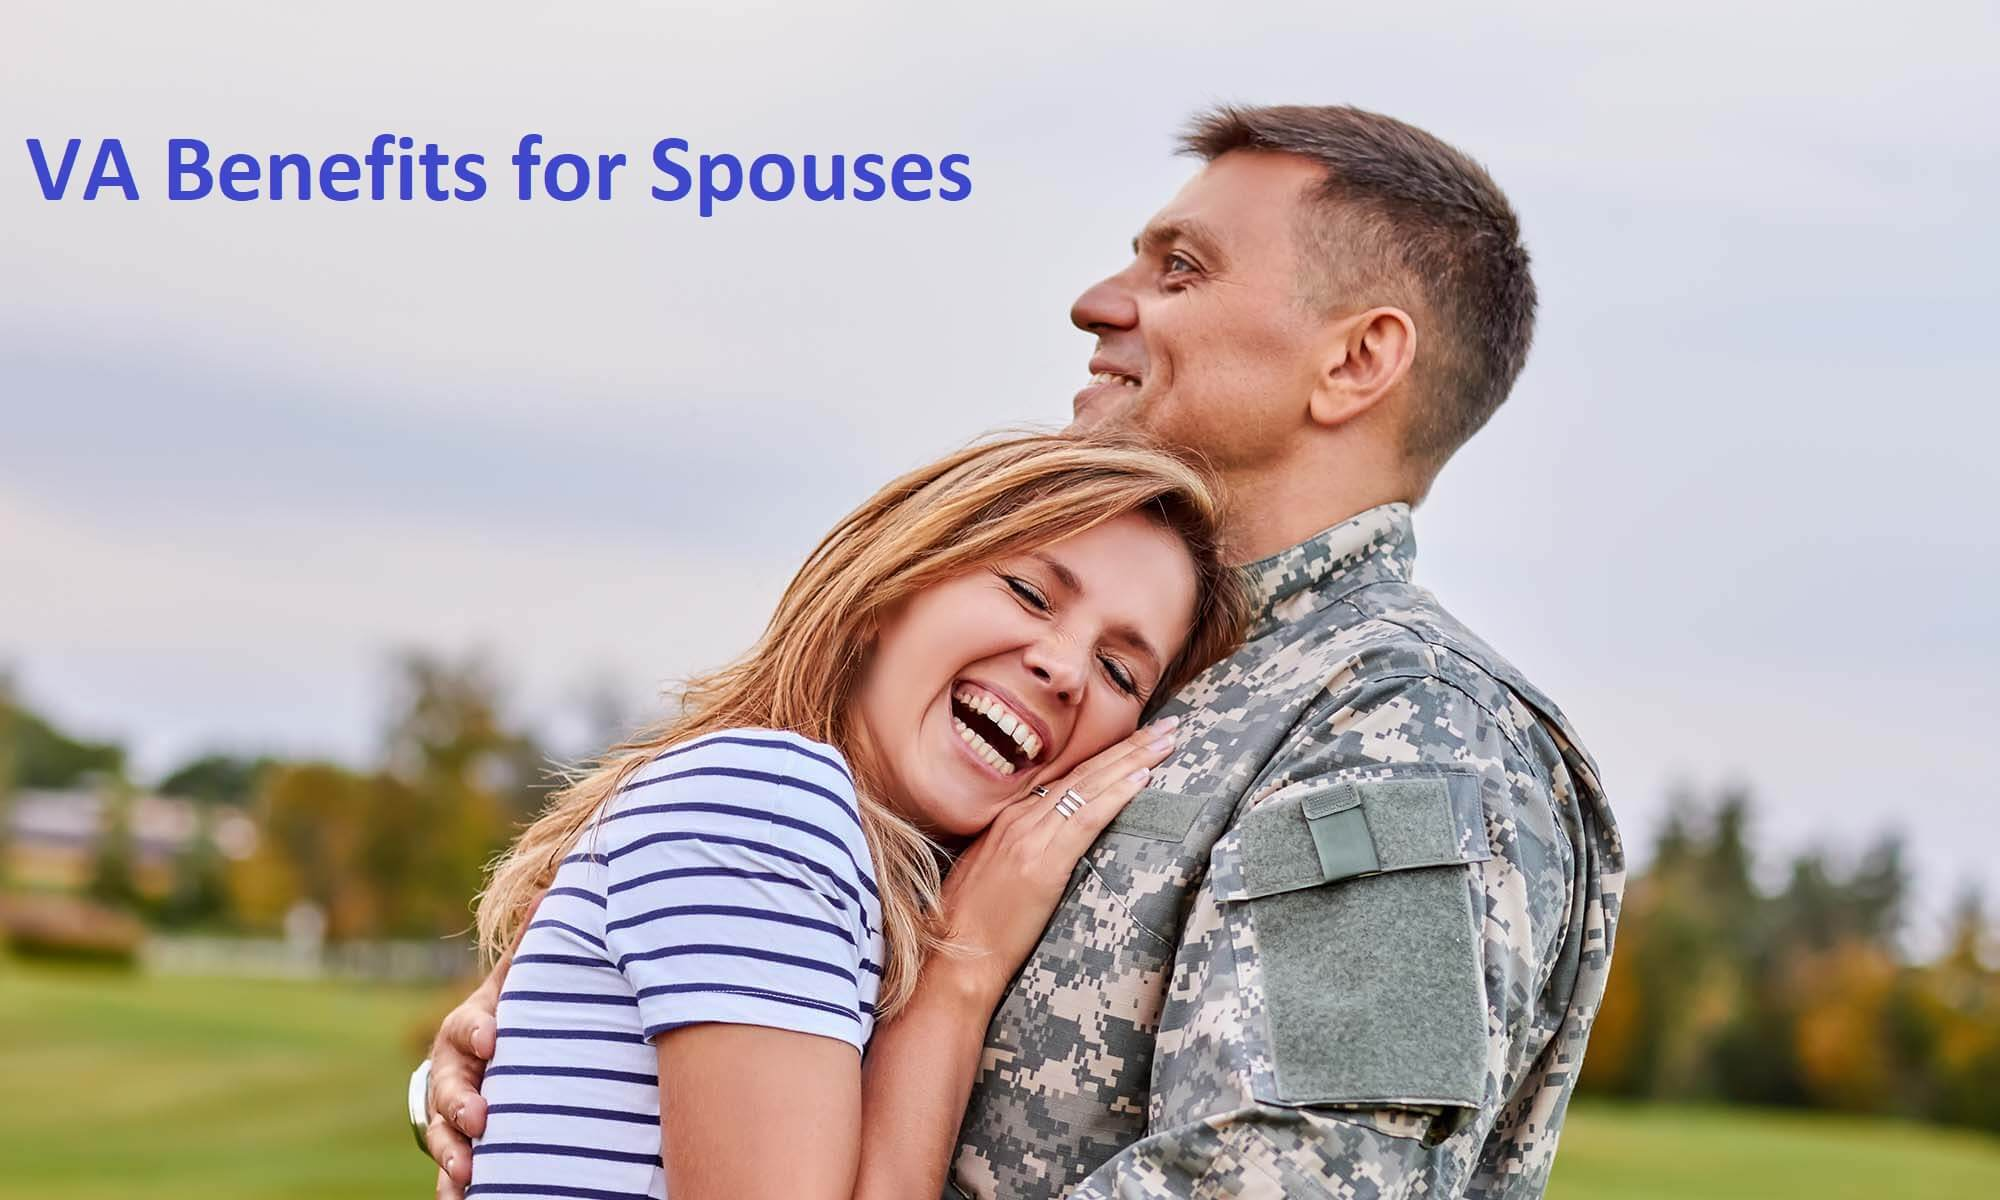 VA Benefits for Spouses